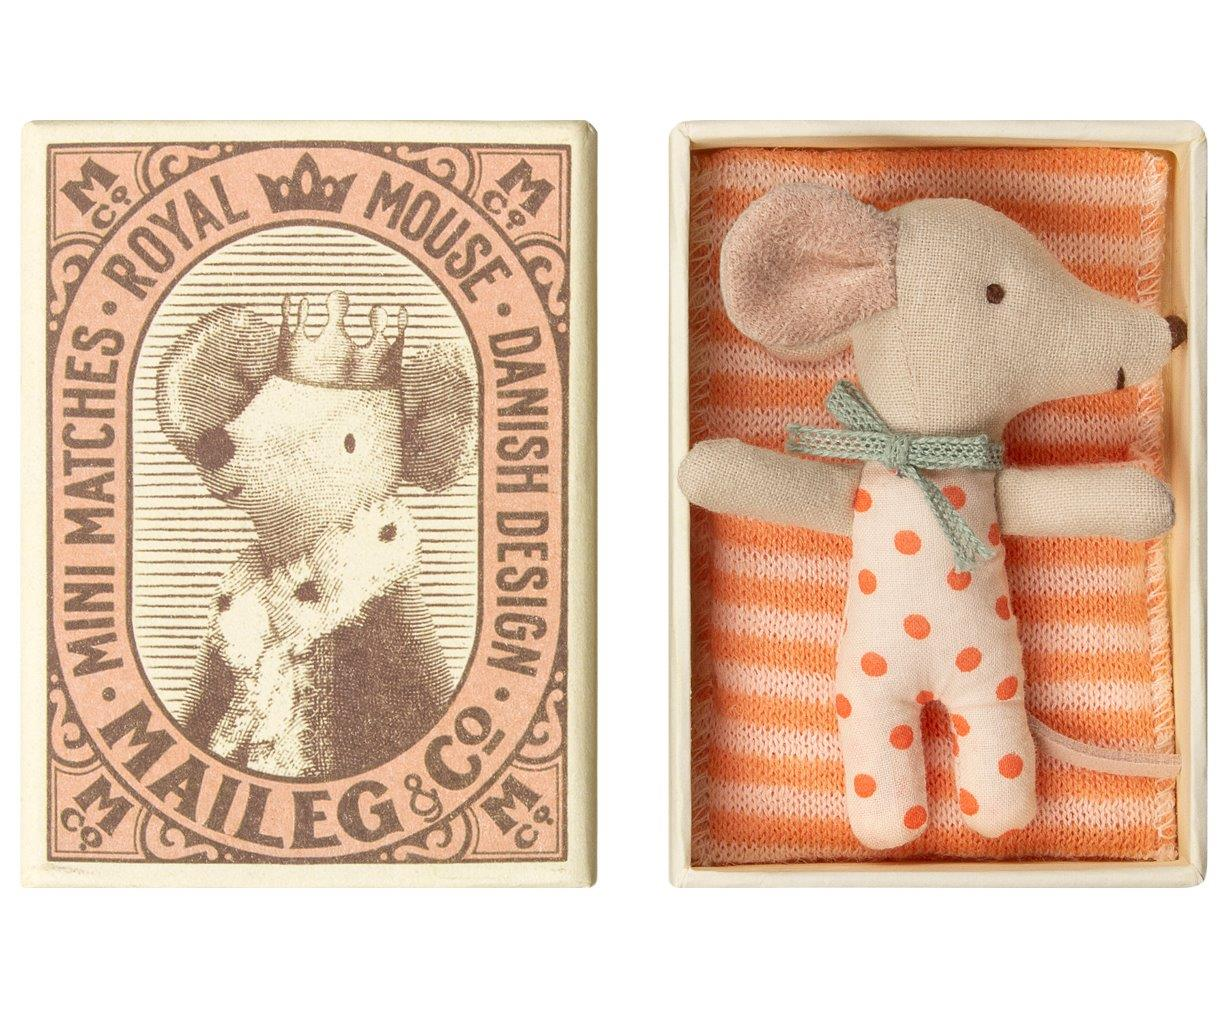 Maileg Maileg Baby Mouse Sleepy/wakey in Box - Girl - Pearls & Swines